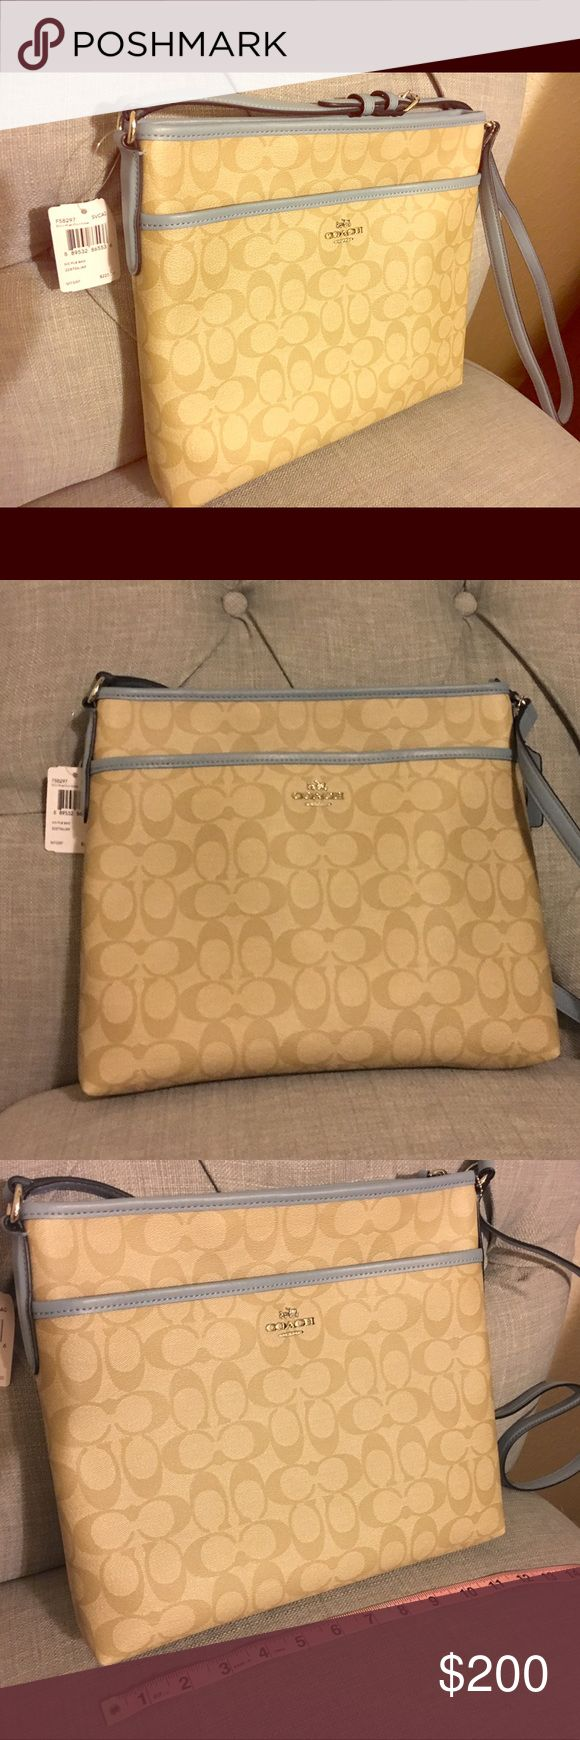 Coach blue tan cross body NWT Coach blue tan crossbody travel bag perfect for iPad, airline tickets and passport. NWT never used. Will be immaculately shipped. Coach Bags Crossbody Bags